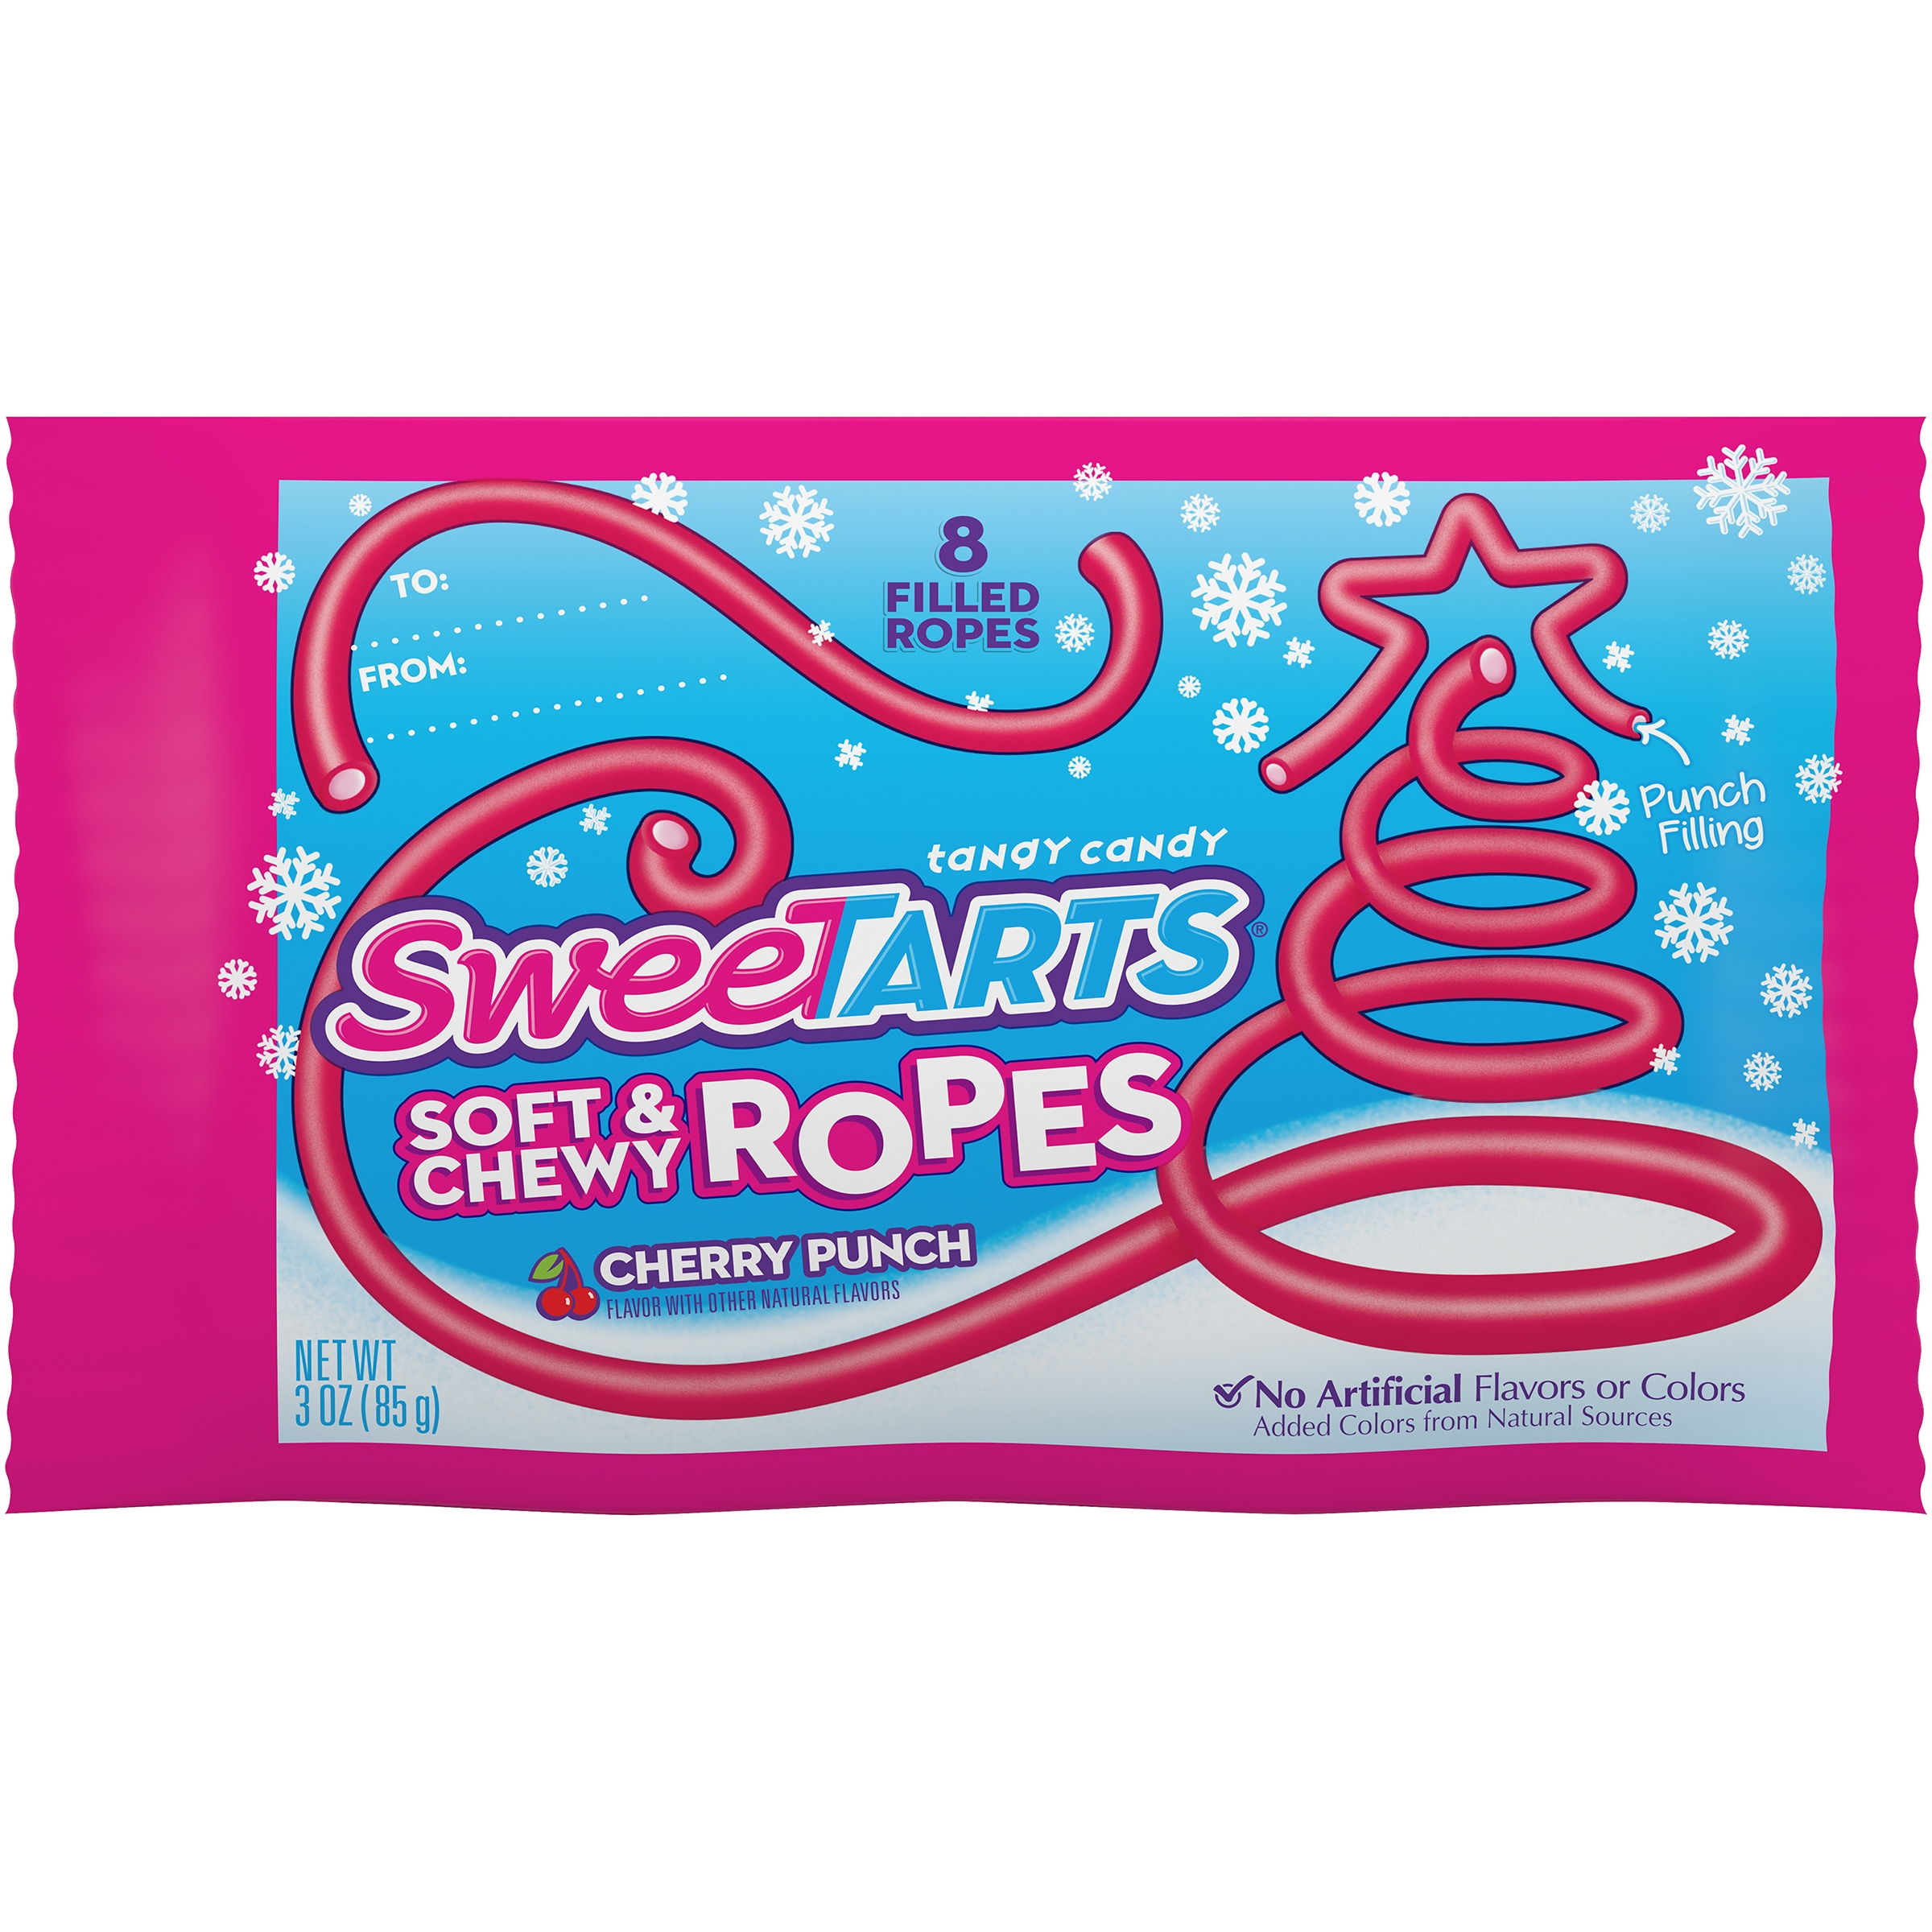 Wonka Sweettarts Soft & Chewy Ropes Holiday Candy